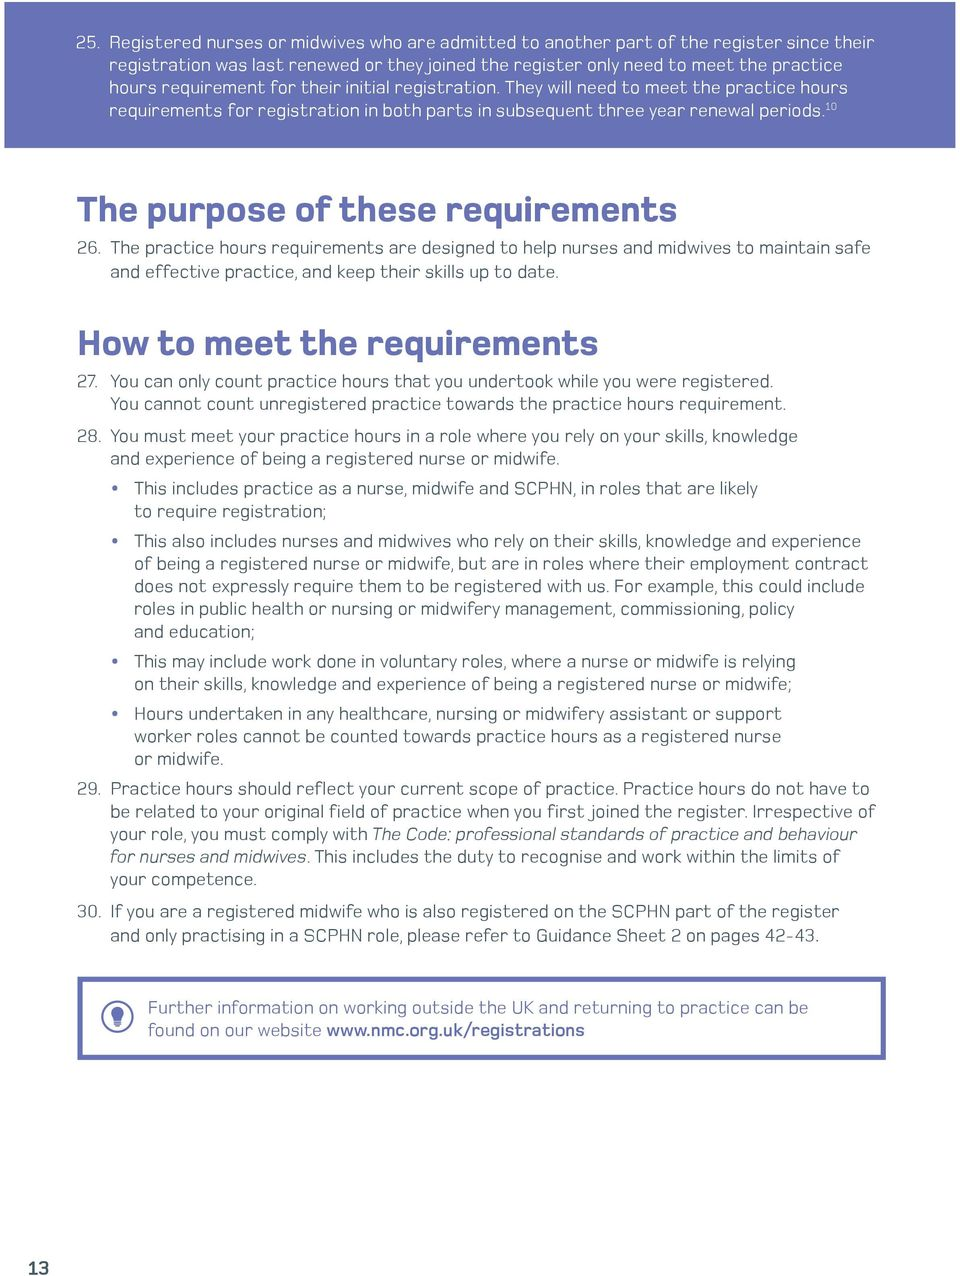 10 The purpose of these requirements 26. The practice hours requirements are designed to help nurses and midwives to maintain safe and effective practice, and keep their skills up to date.